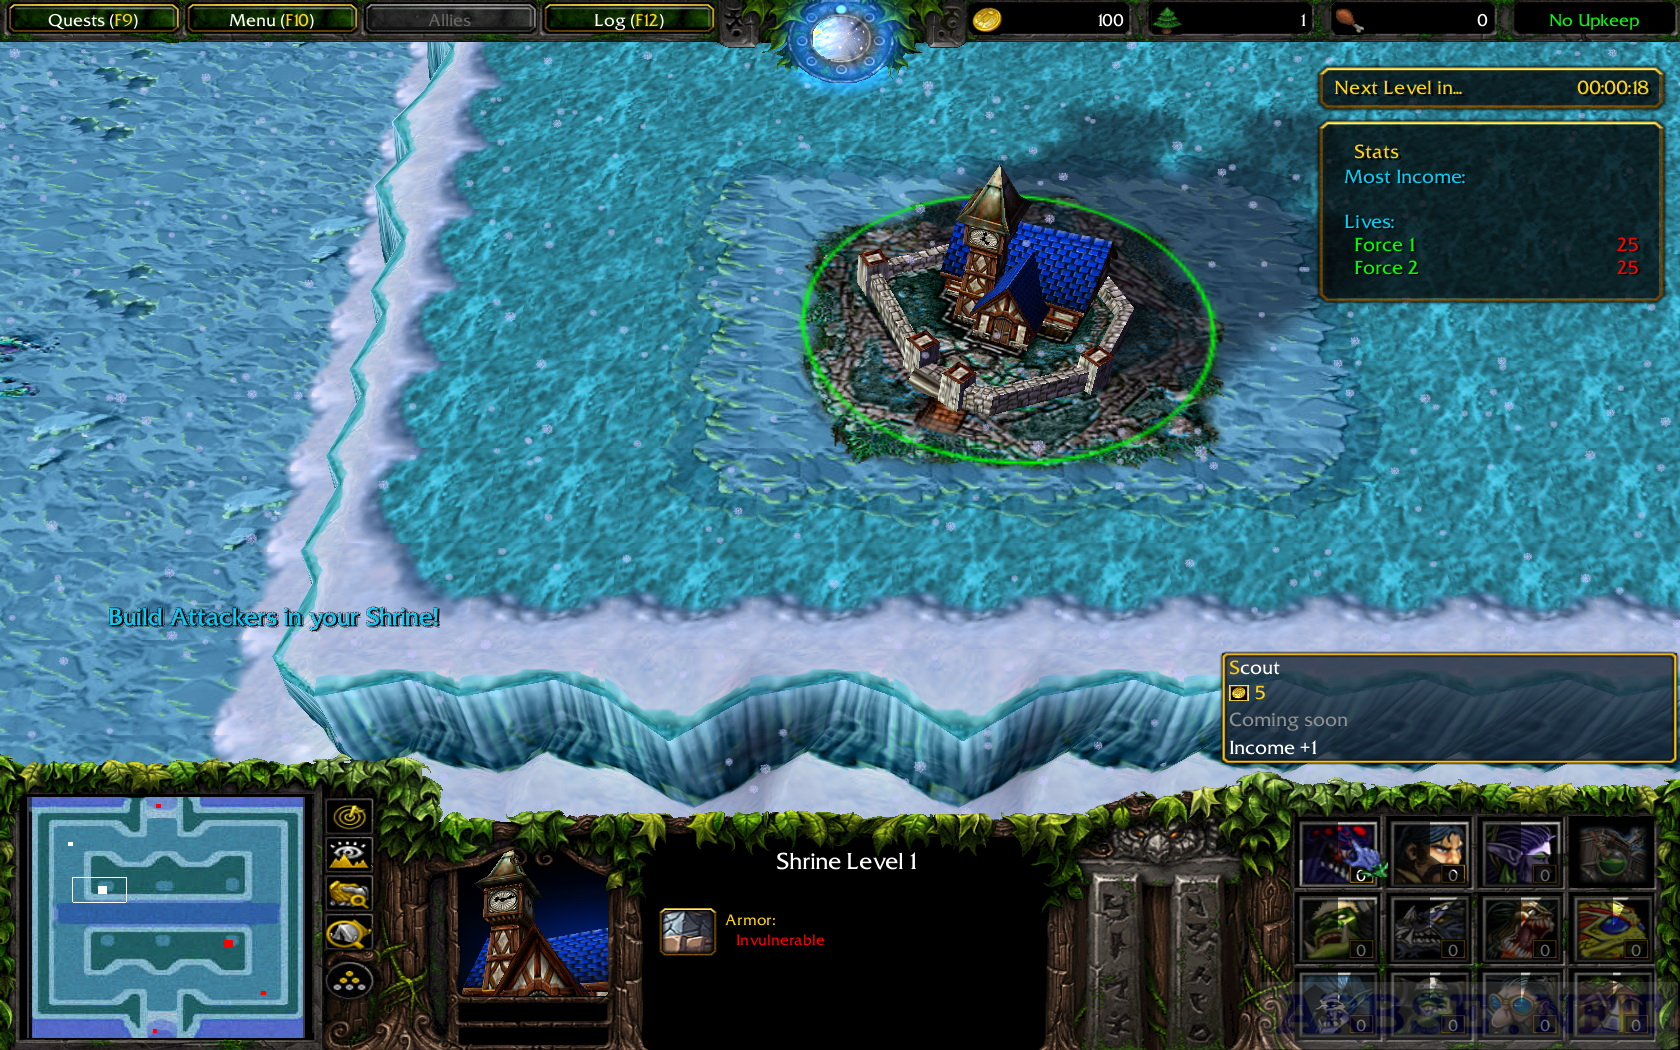 Warcraft 3 sex map exposed images